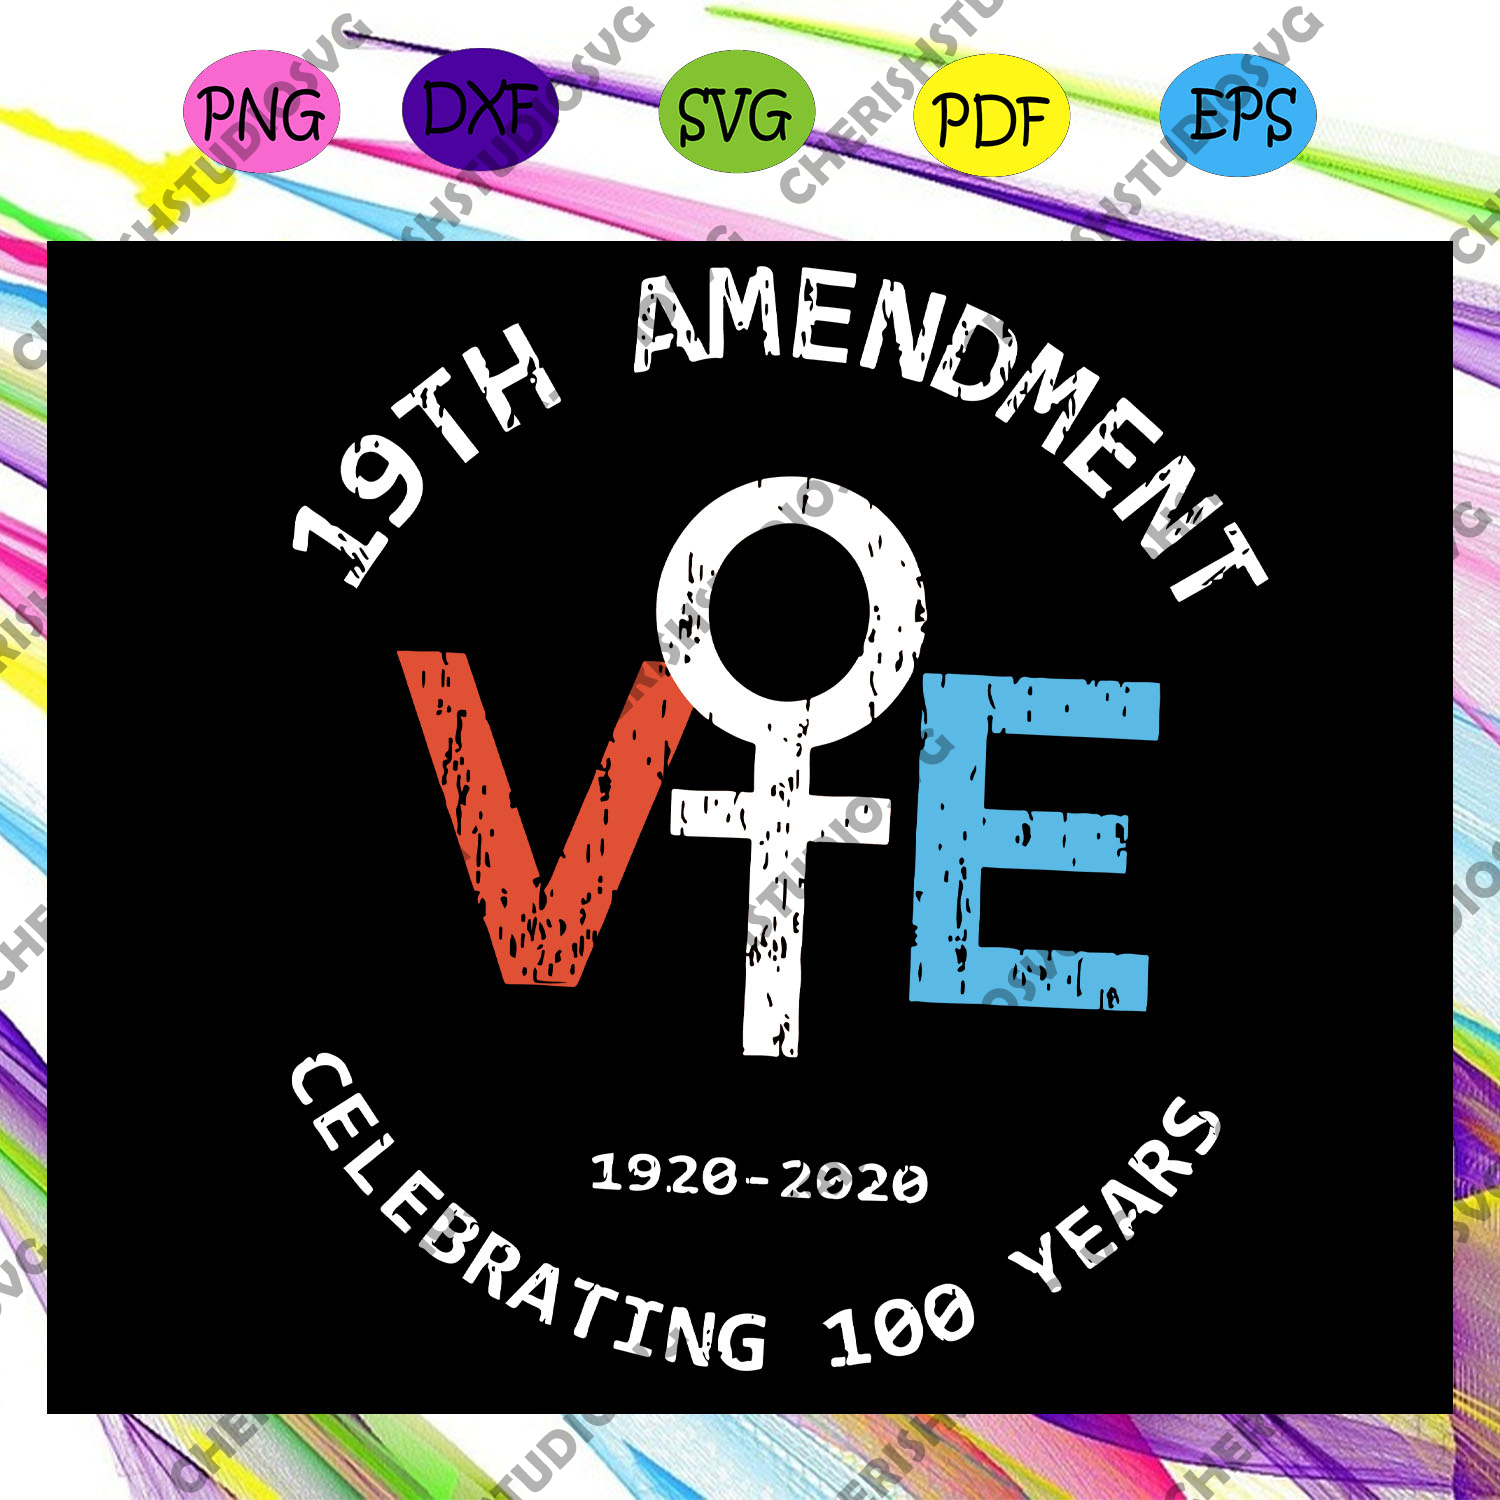 19th Amendment Svg, Suffrage Svg, Feminism Svg, Empowerment Svg, Women Svg, Gift For Women Svg, Feminist For Silhouette, Files For Cricut, SVG, DXF, EPS, PNG Instant Download